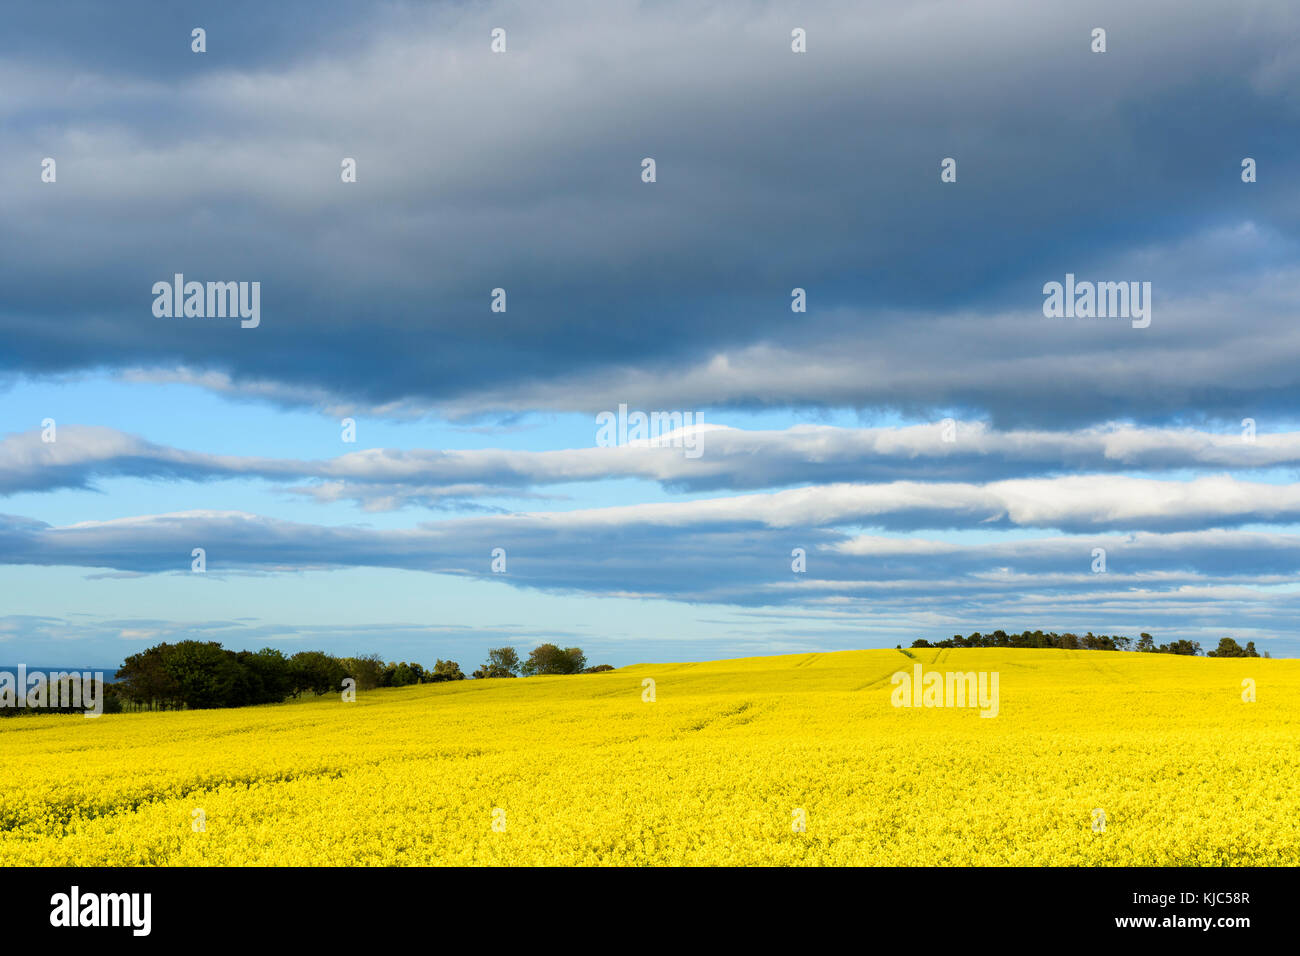 Scenic countryside with bright yellow canola field and dark clouds in sky at St Abbs in Scotland - Stock Image